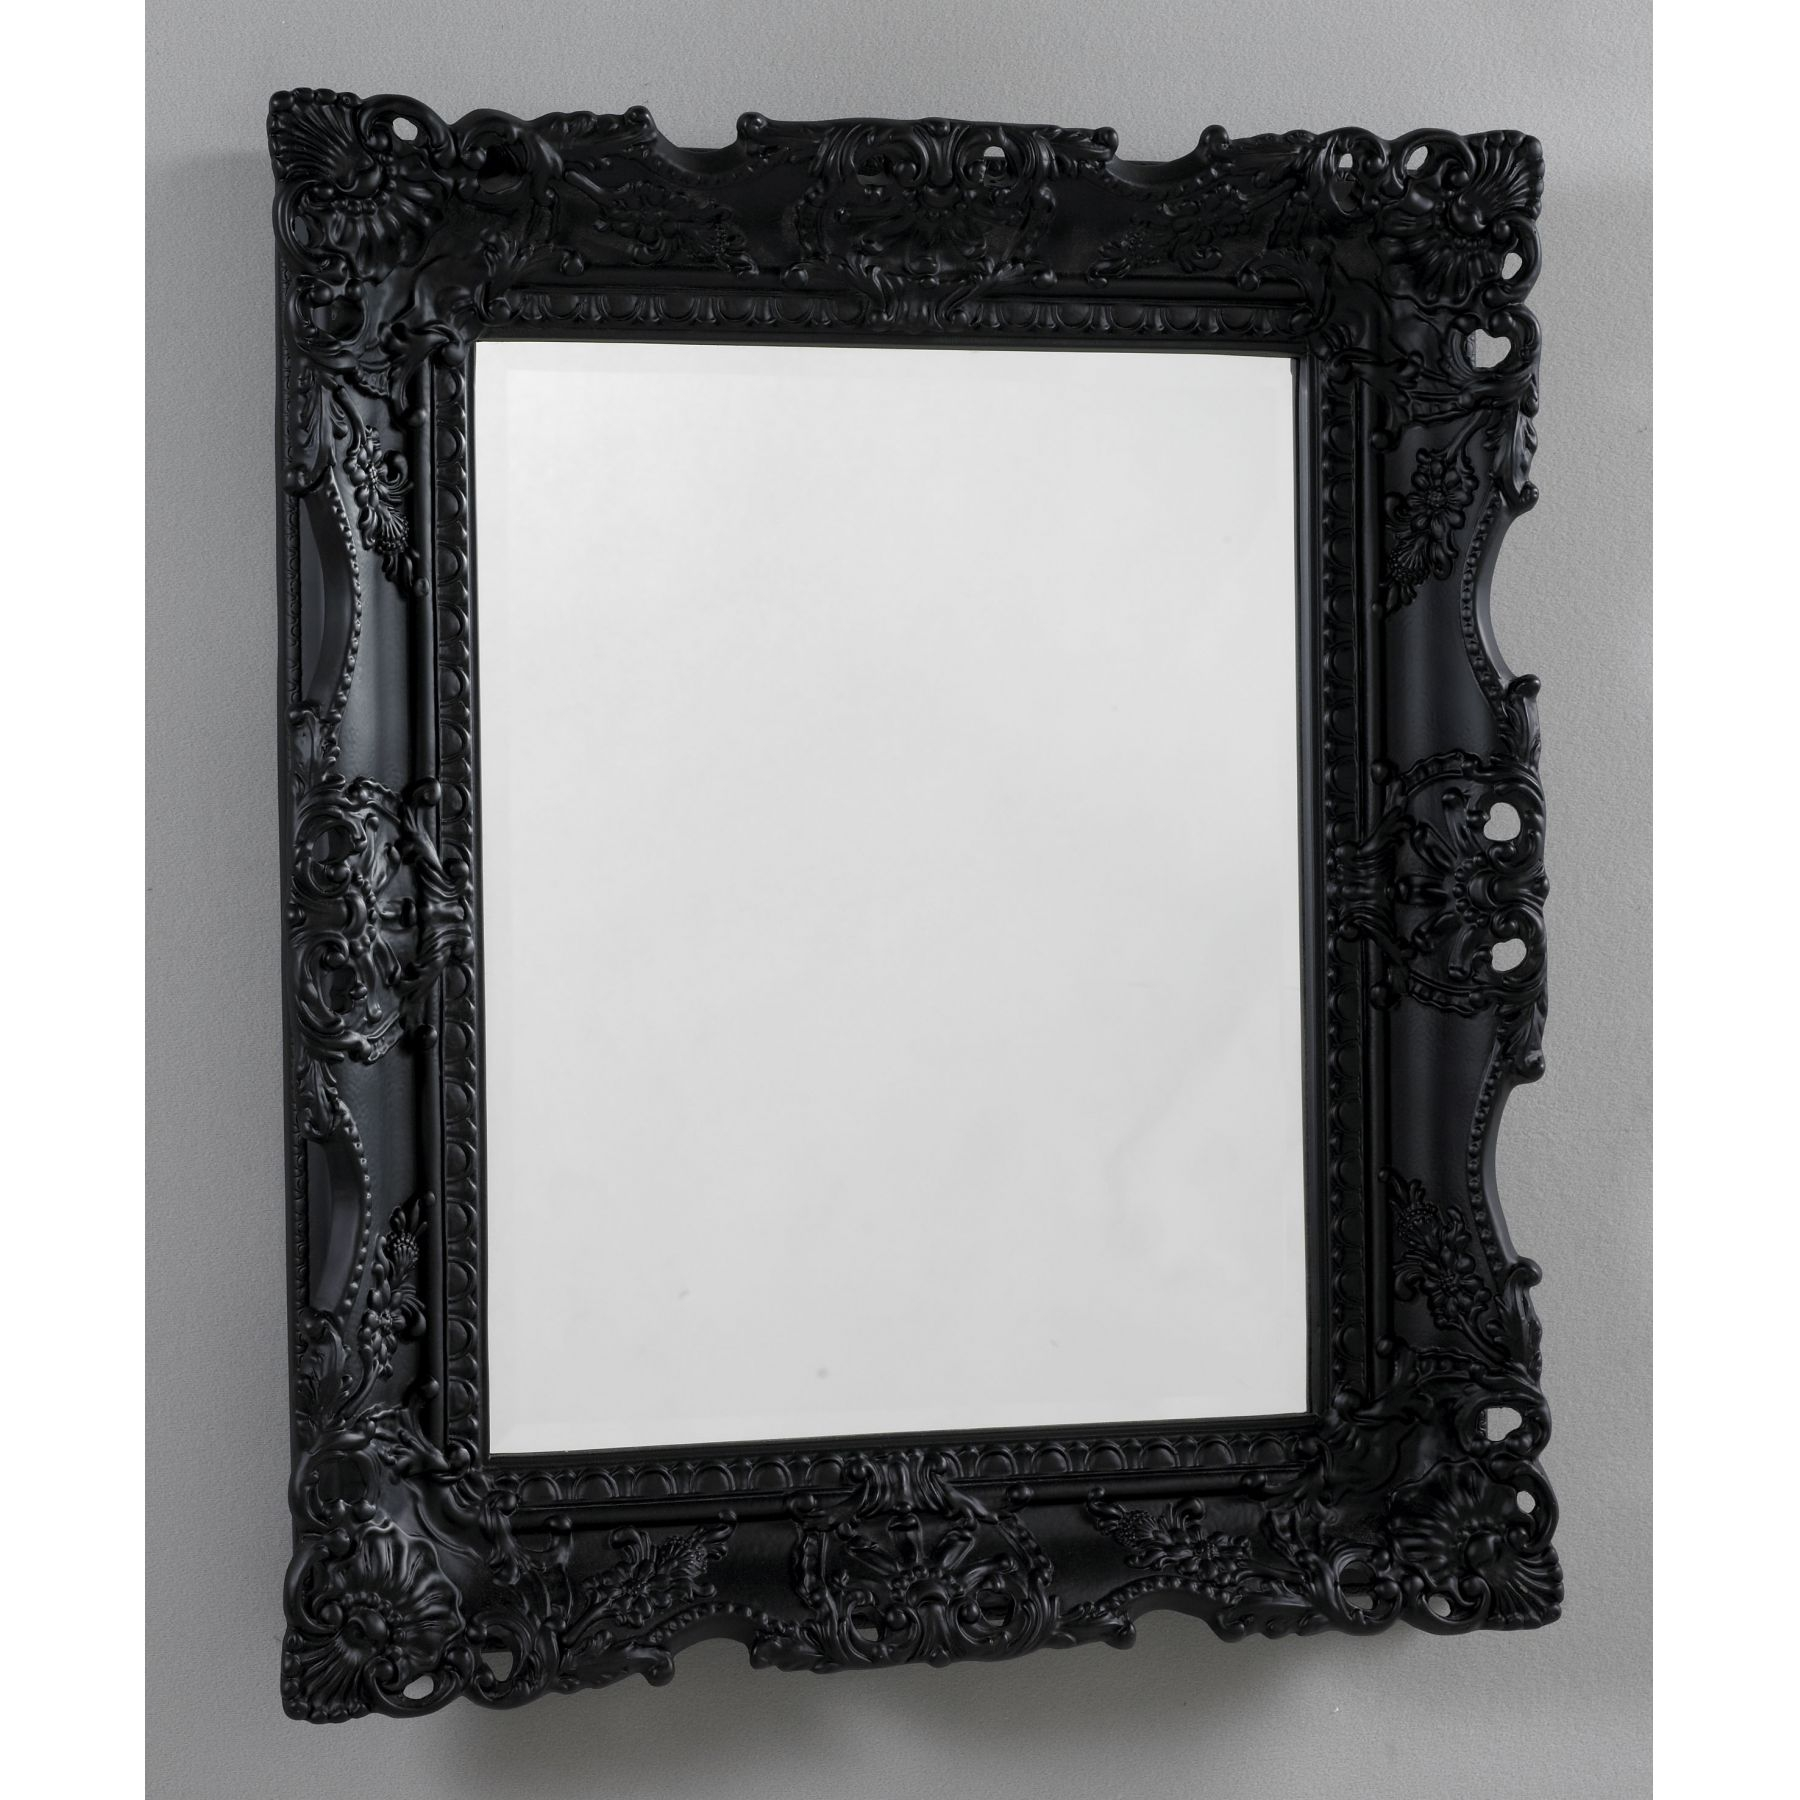 Home Decor Antique French Black Mirror Black Mirror Home Decor In French Antique Mirrors For Sale (Image 9 of 15)